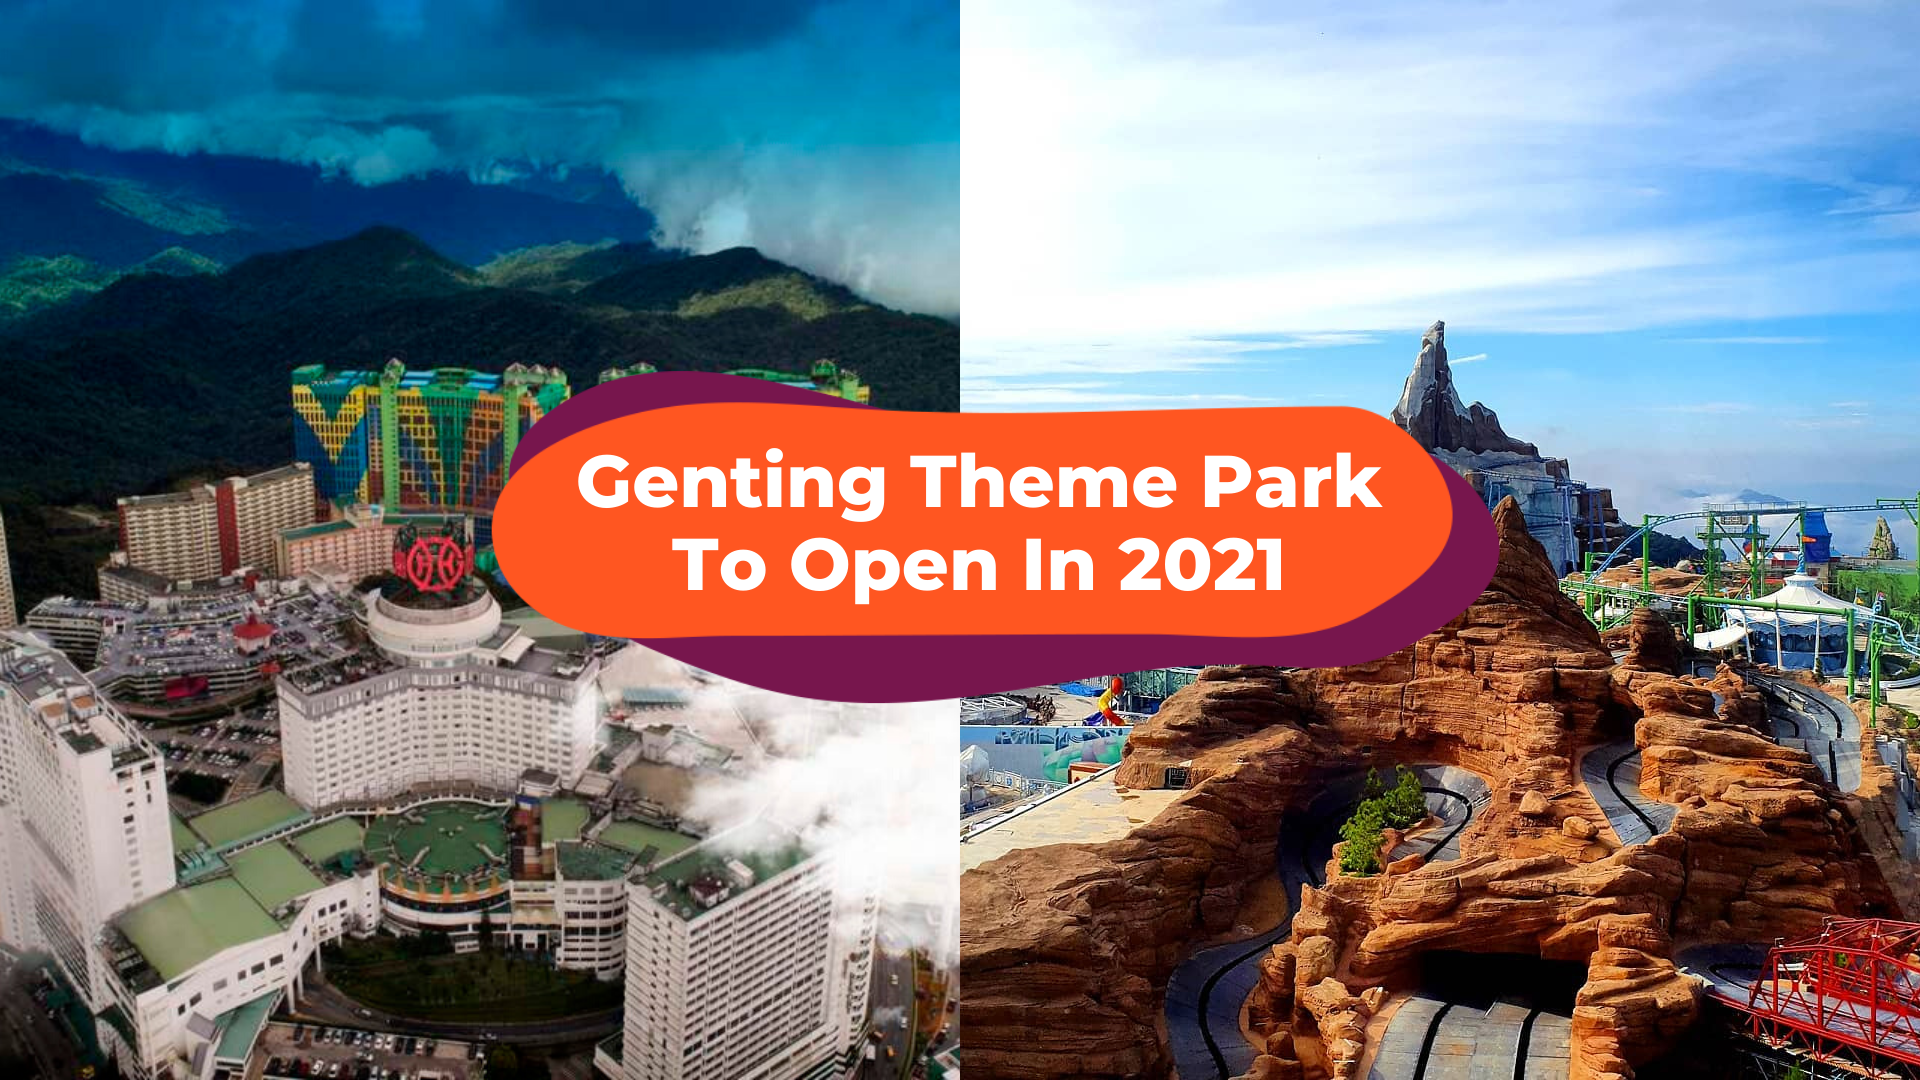 Genting Highland Outdoor Theme Park SkyWorlds Is Set To Open in 2021!